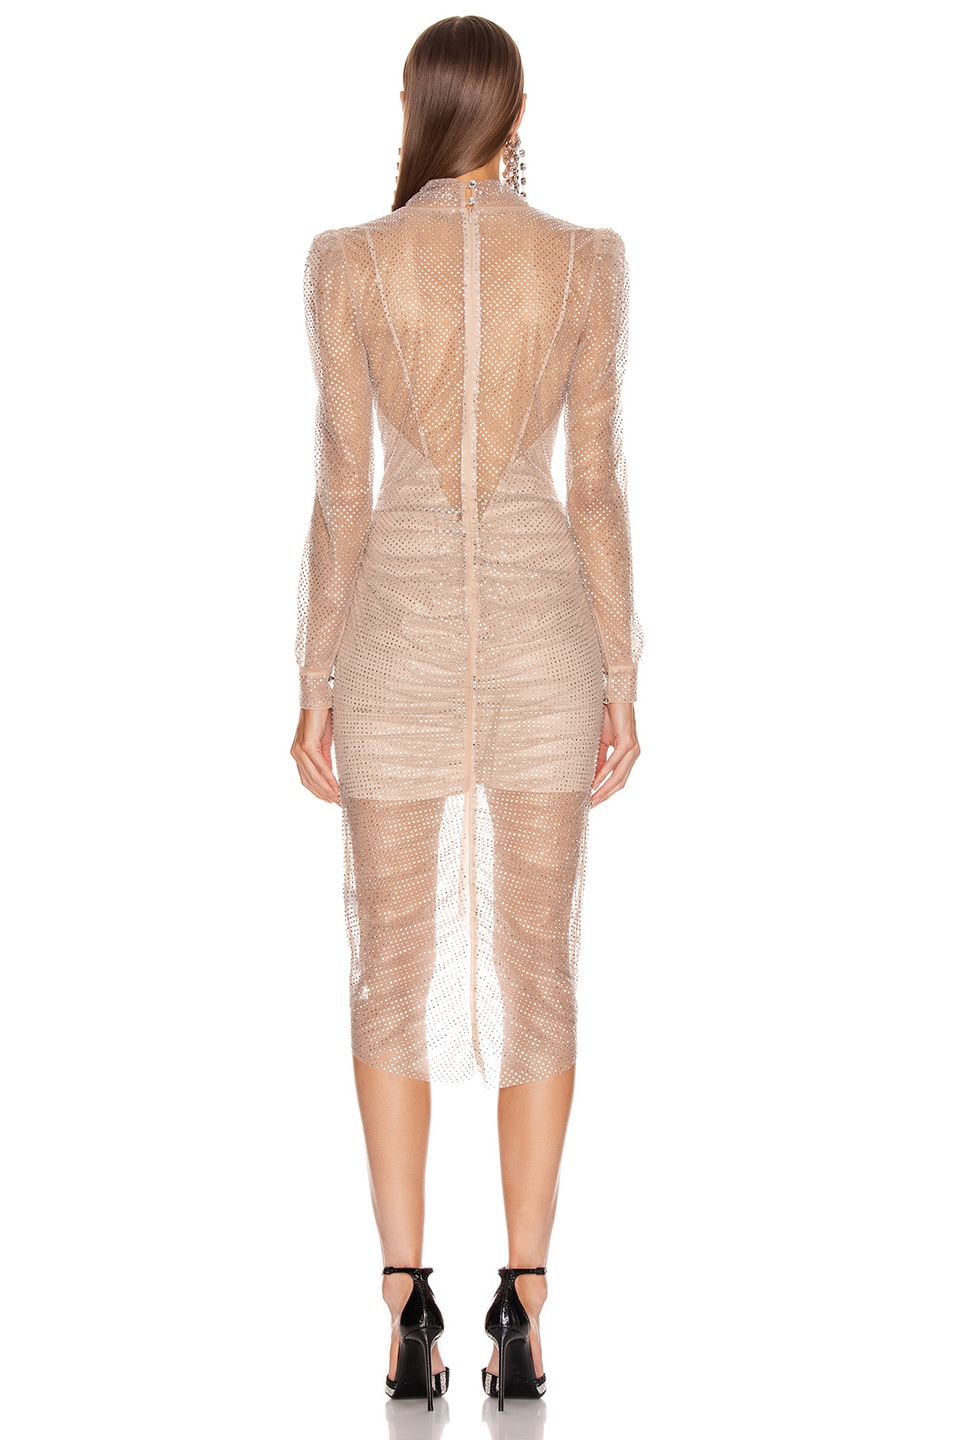 Image 3 of Rêve Riche Armin Dress in Nude